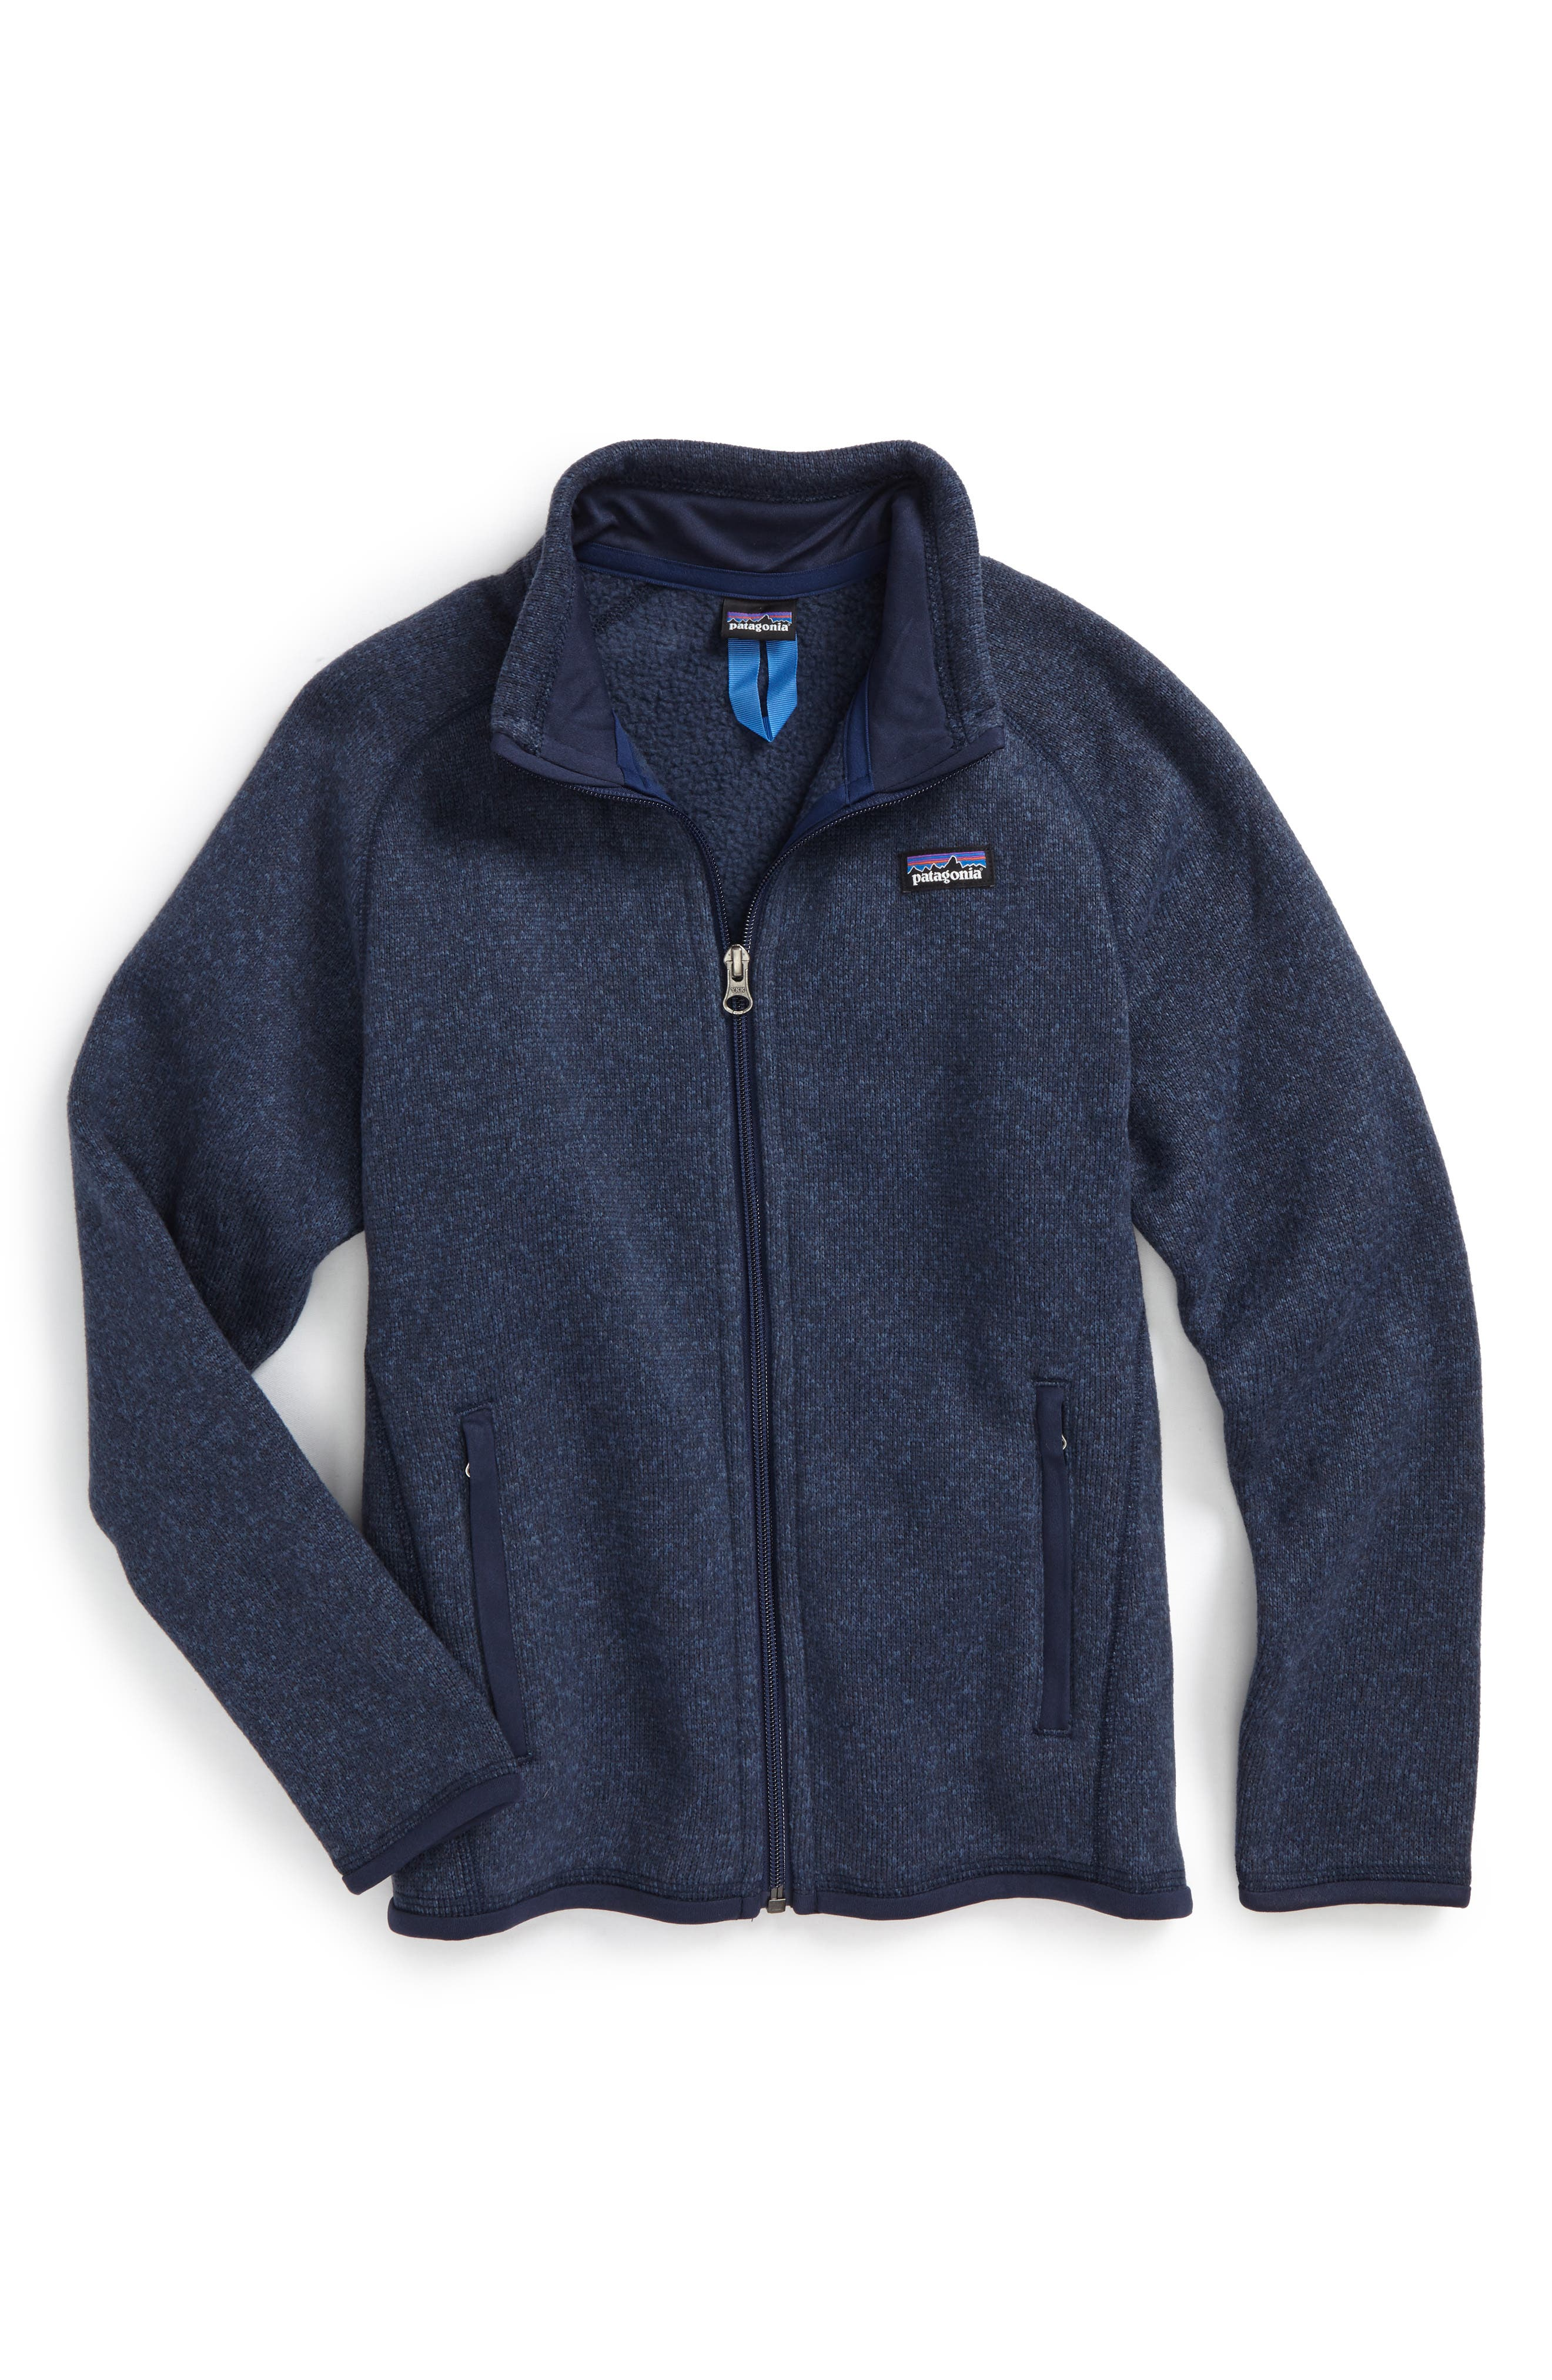 Better Sweater<sup>®</sup> Jacket,                             Main thumbnail 1, color,                             Classic Navy